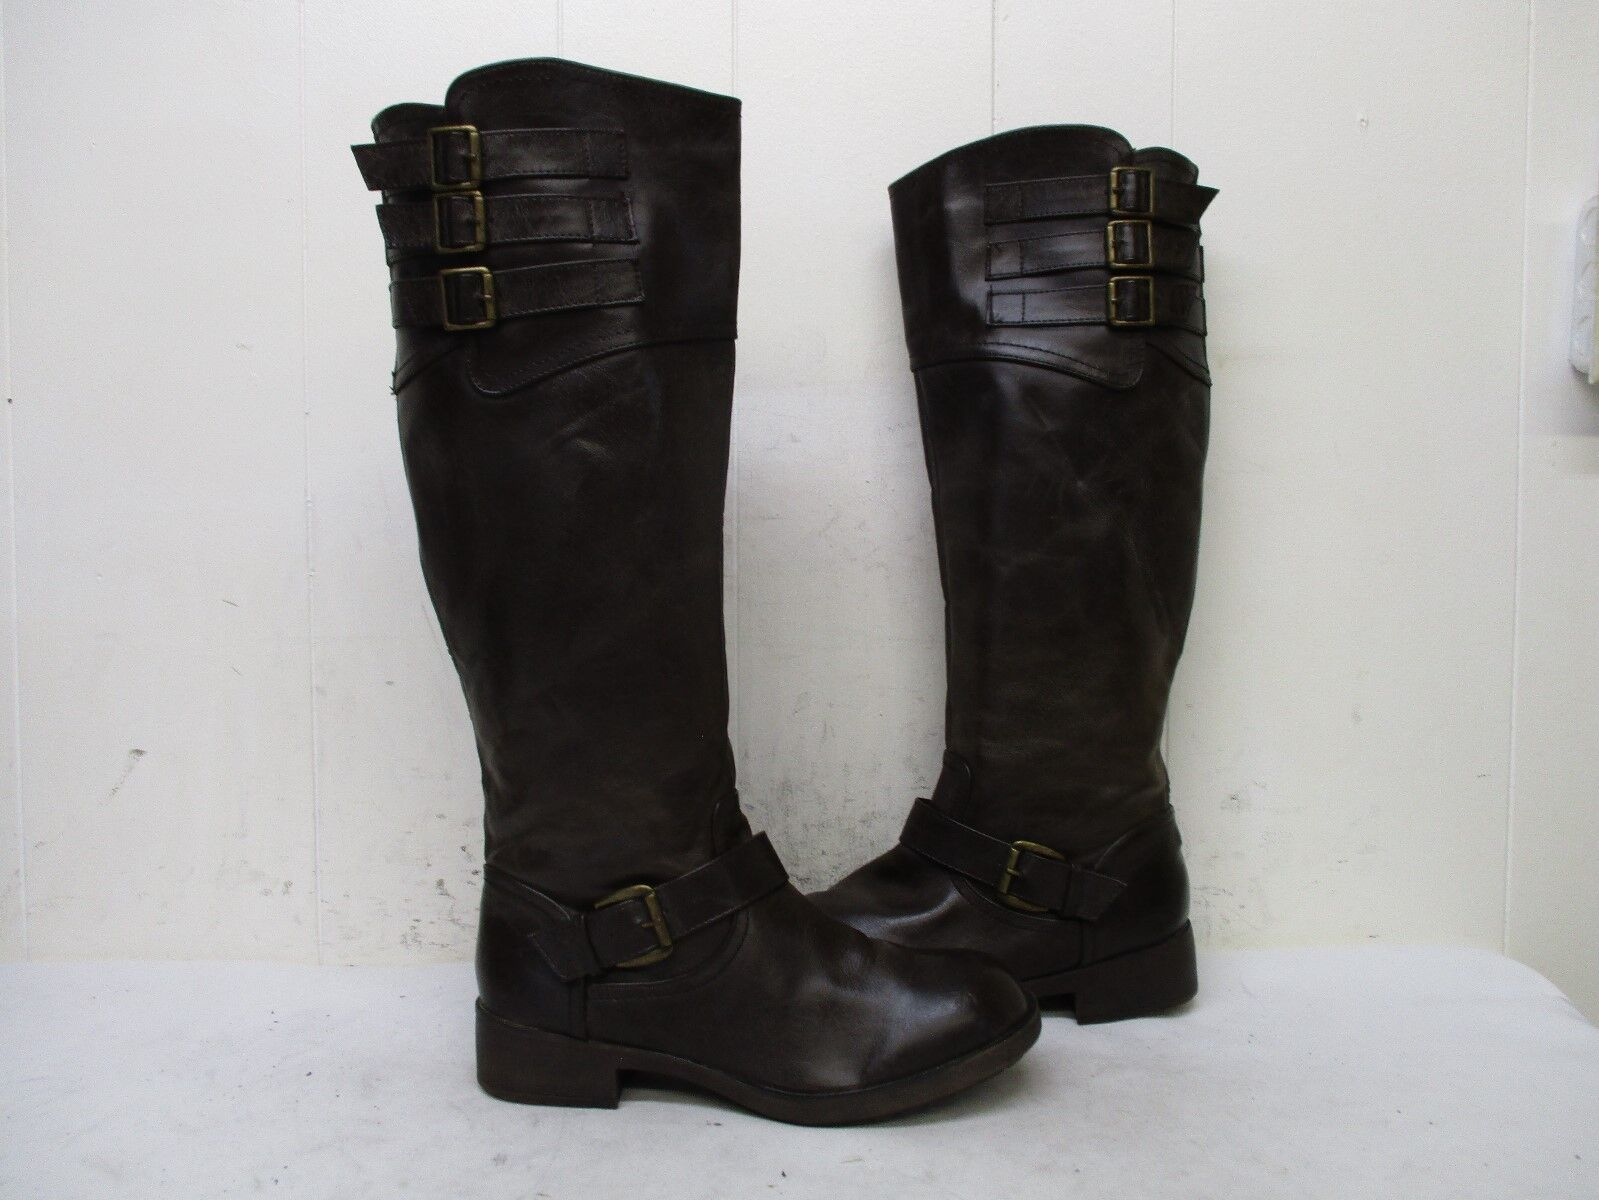 MADDEN GIRL Lolly Brown Boots Knee High Zip Riding Boots Brown Womens Size 7.5 M 5b8f3e